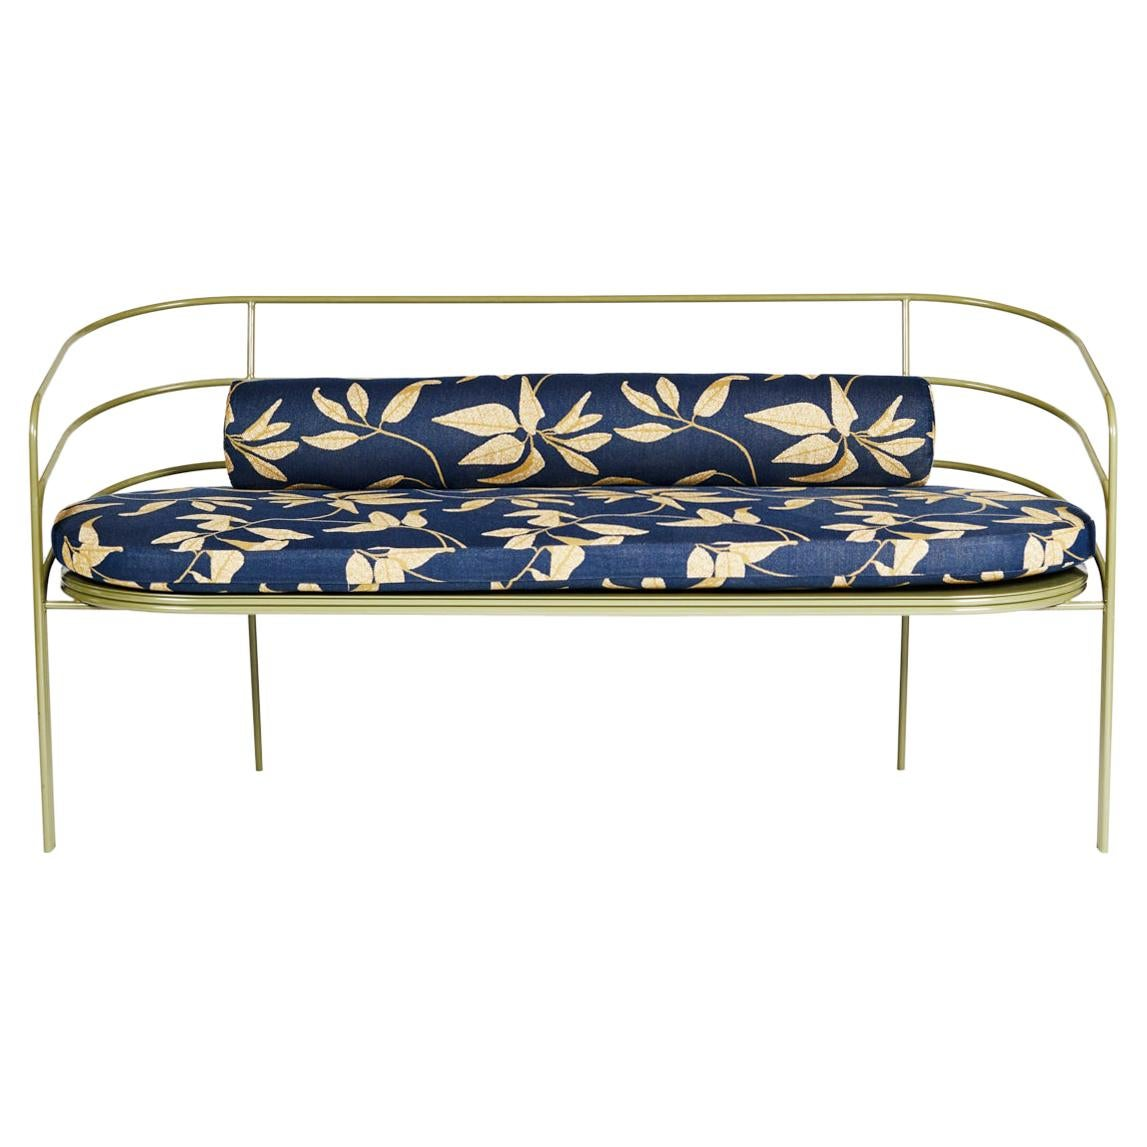 Demille, Indoor/Outdoor Powder-Coated Stainless Steel Sofa by Laun